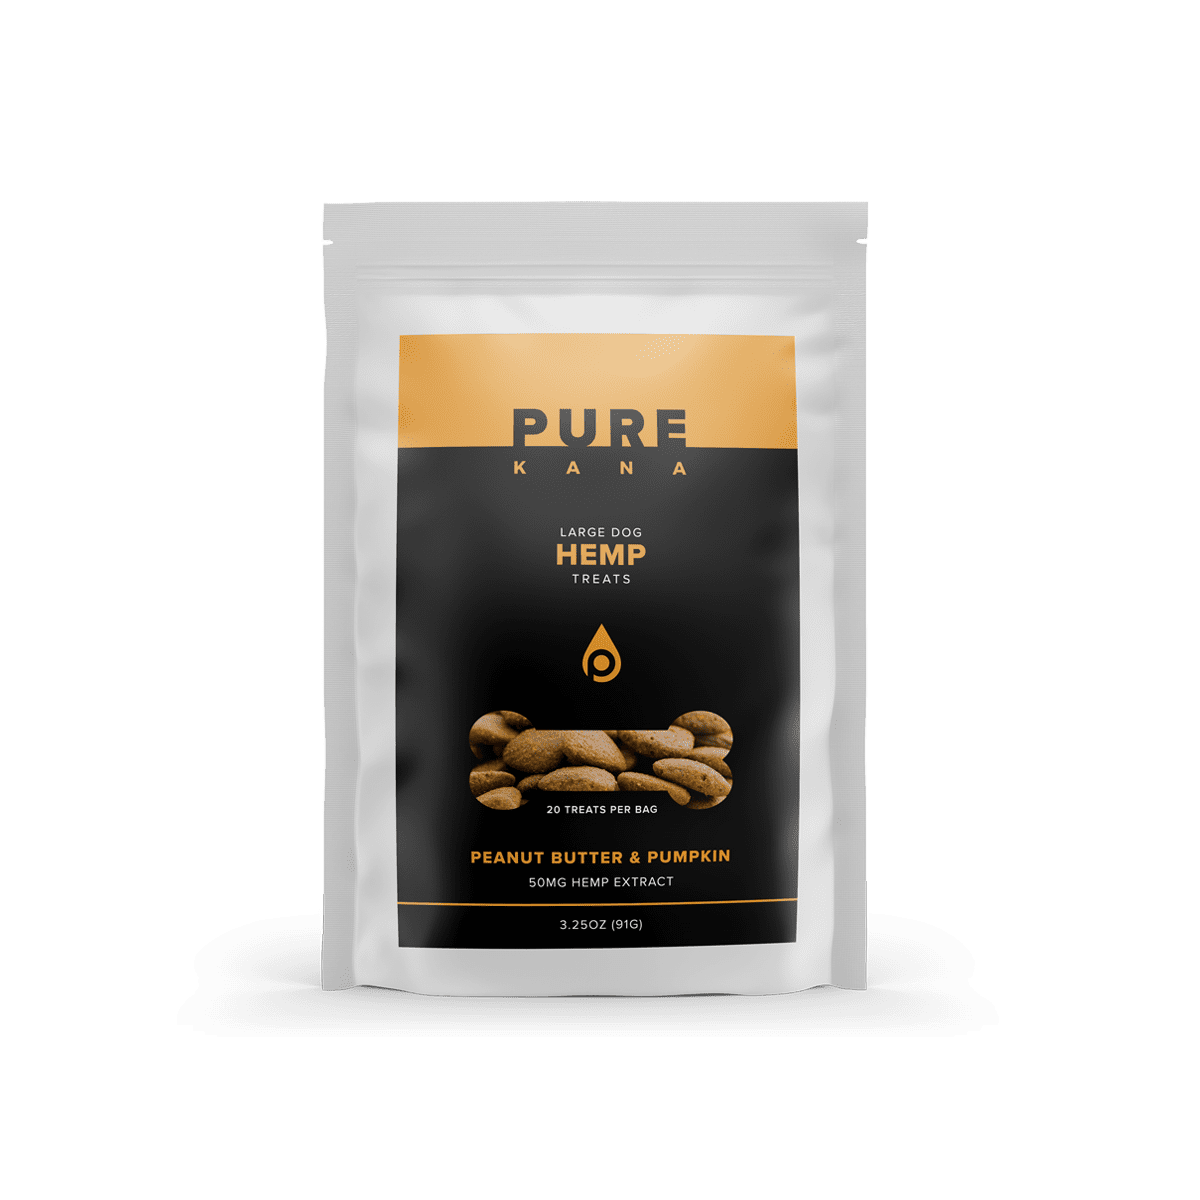 Hemp Dog Treats (Large Dog) – Peanut Butter & Pumpkin